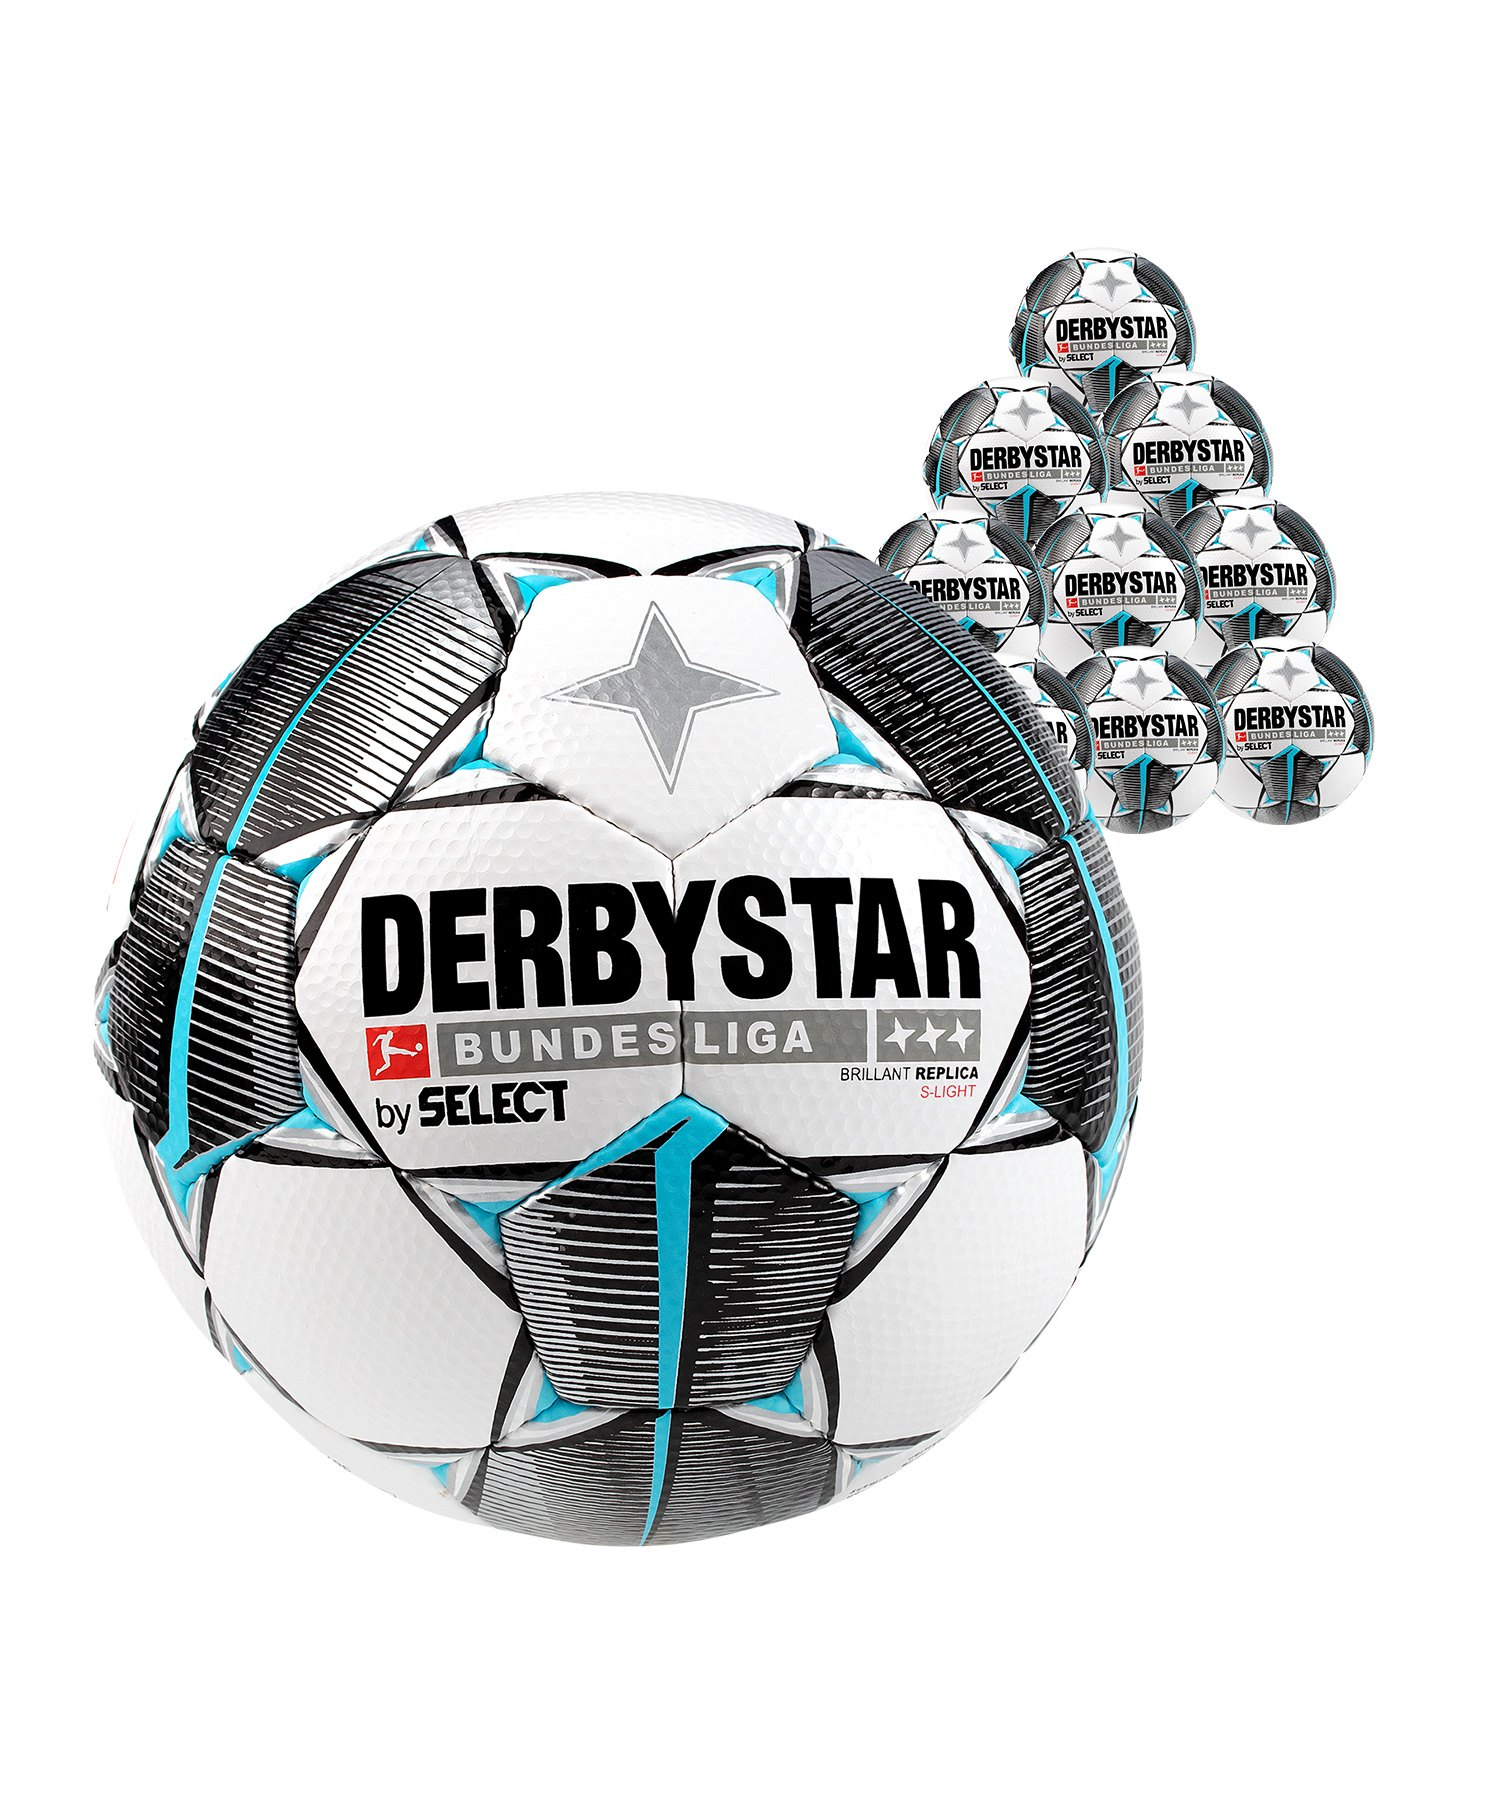 Derbystar Bundesliga Bril Replica S-Light 20x Gr.5 Weiss F019 - weiss